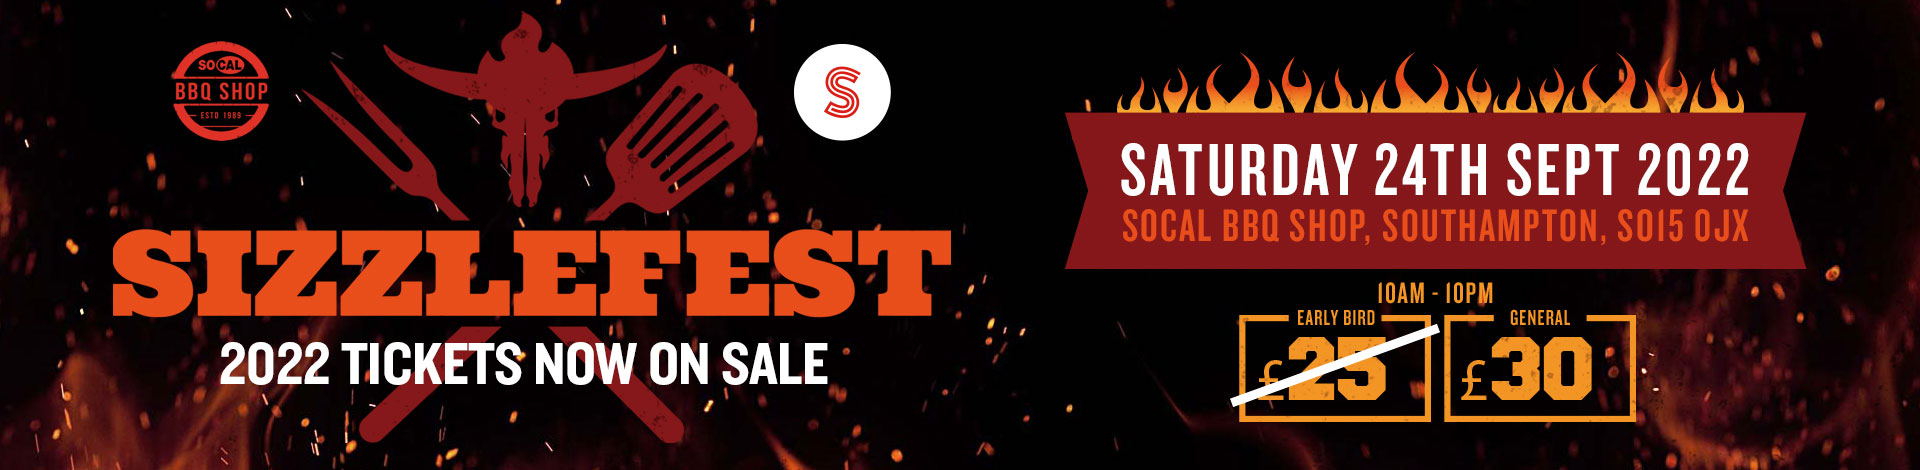 Sizzlefest 2022 tickets now on sale